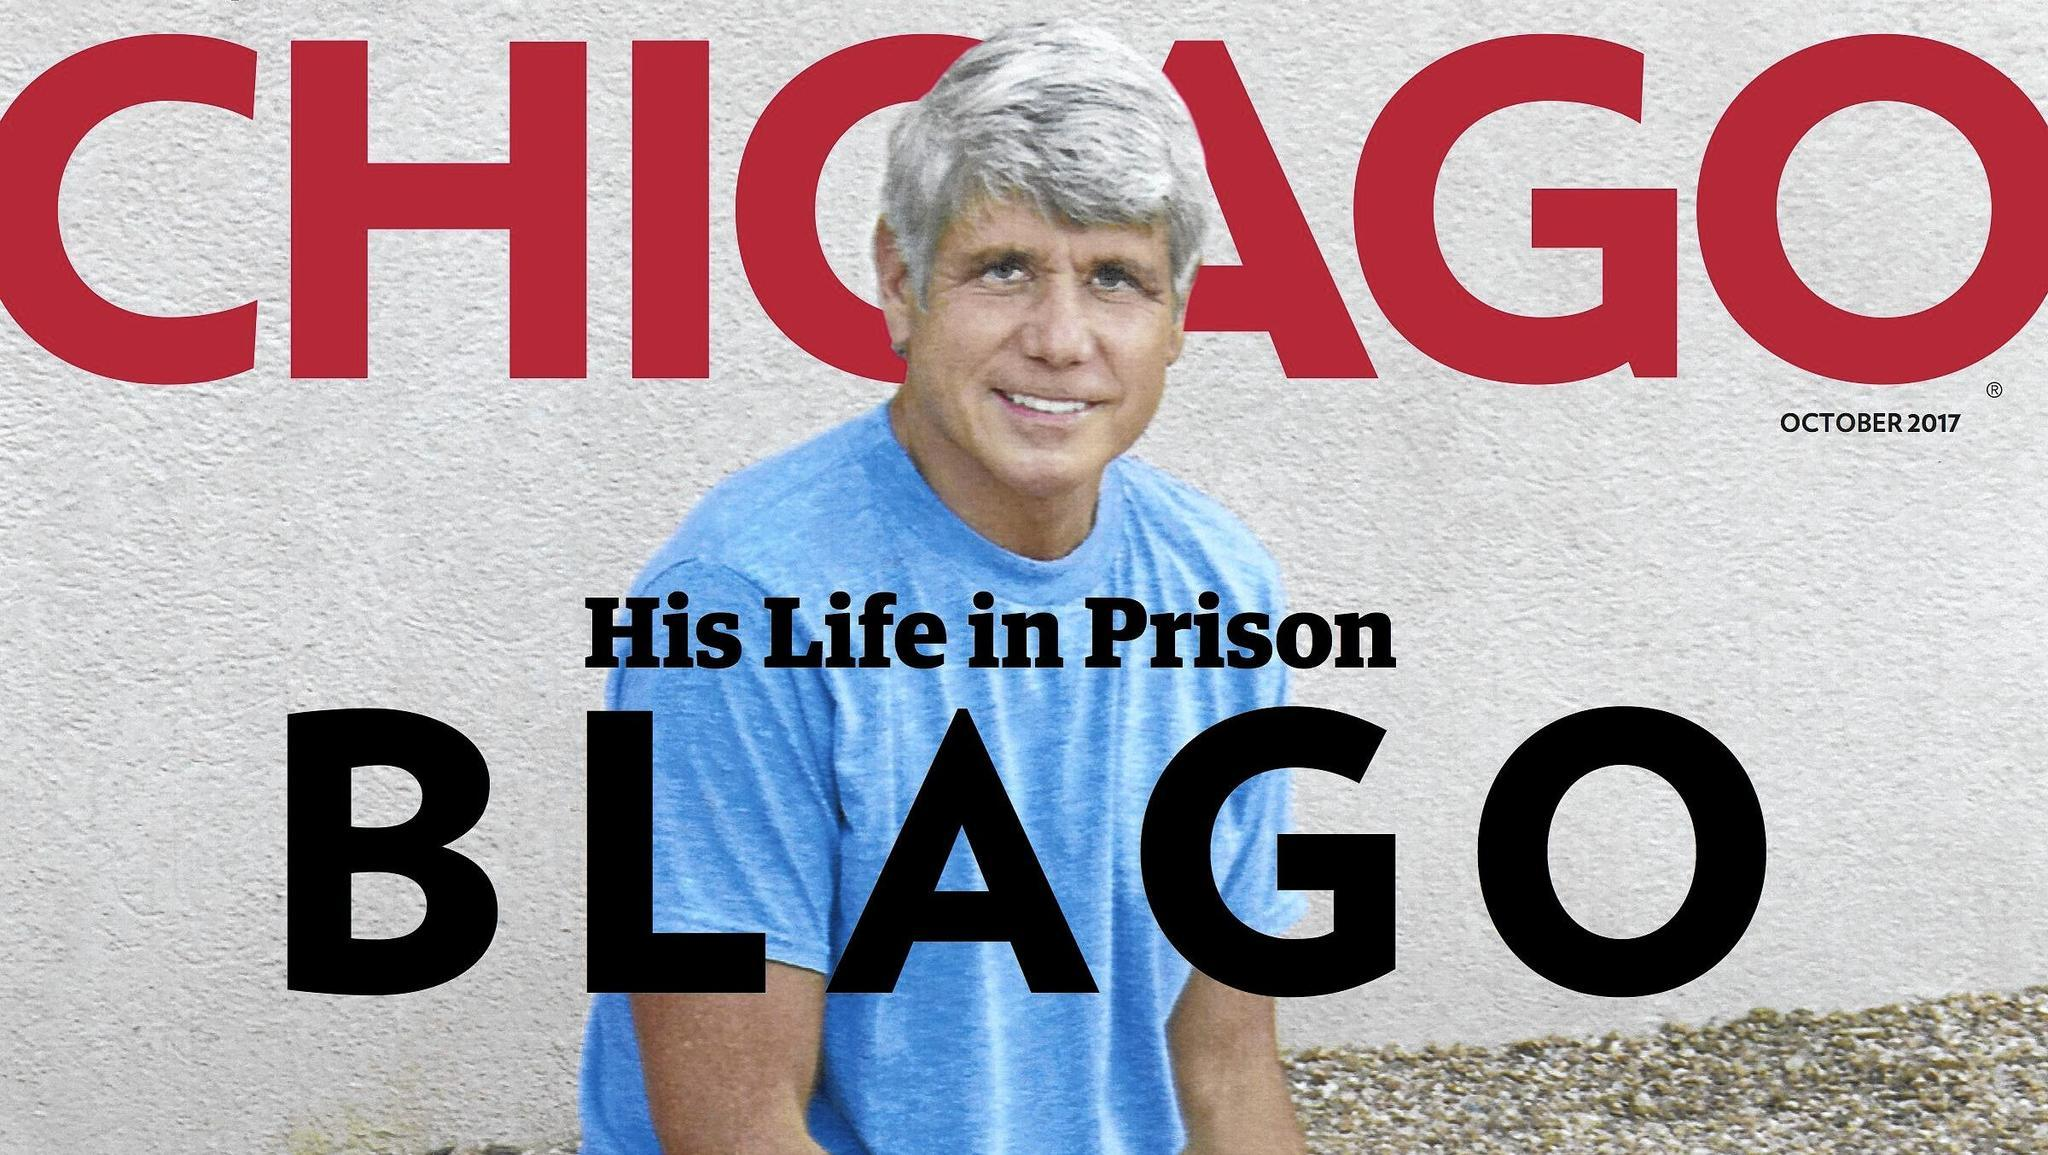 blagojevich unrepentant but bruised reflects on prison